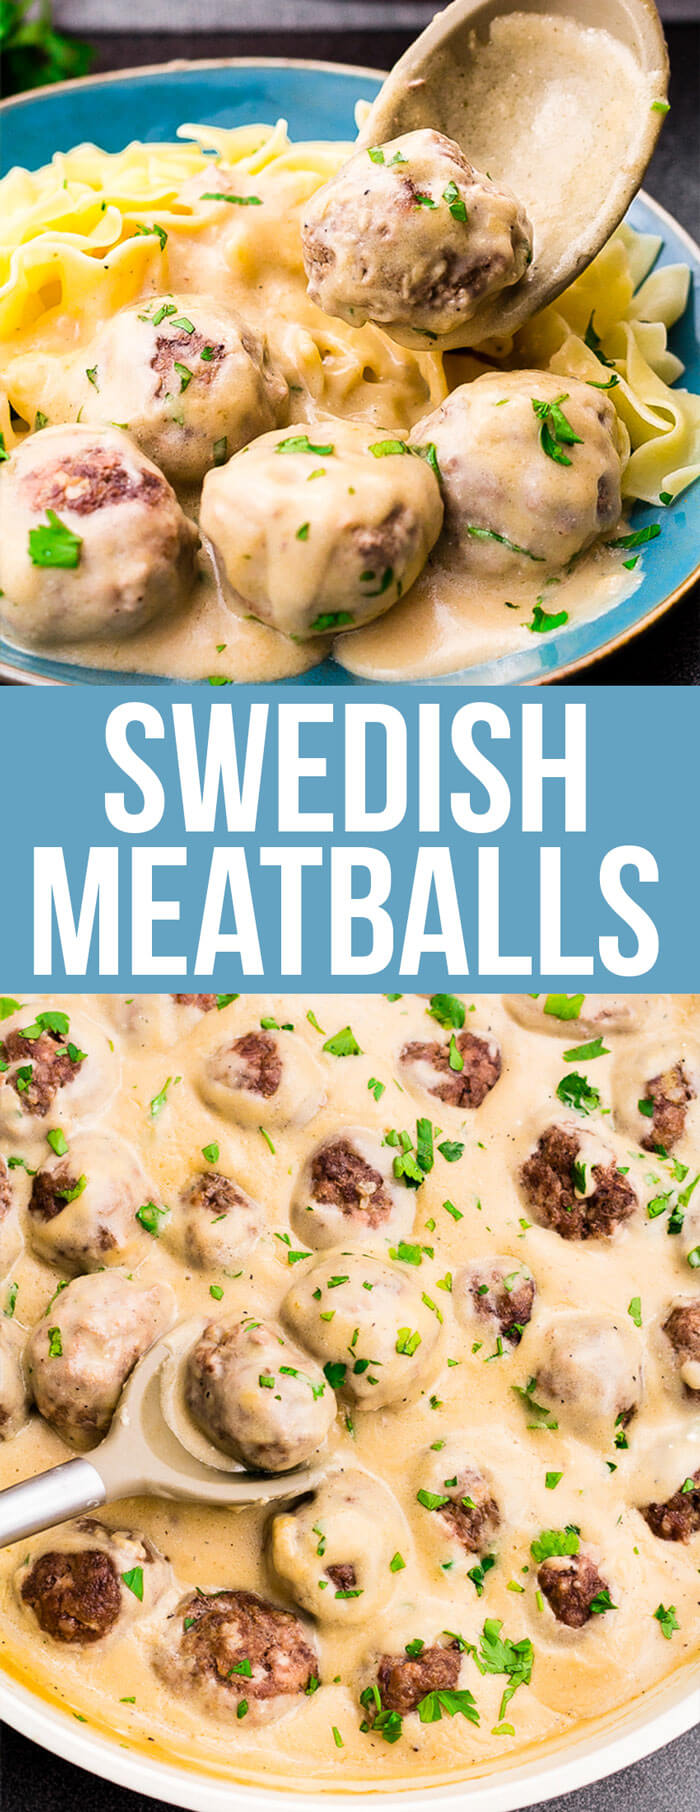 Swedish Meatballs: Mouthwatering, homemade,Swedishmeatballs smothered in a decadent sauce; these beat IKEA every time!